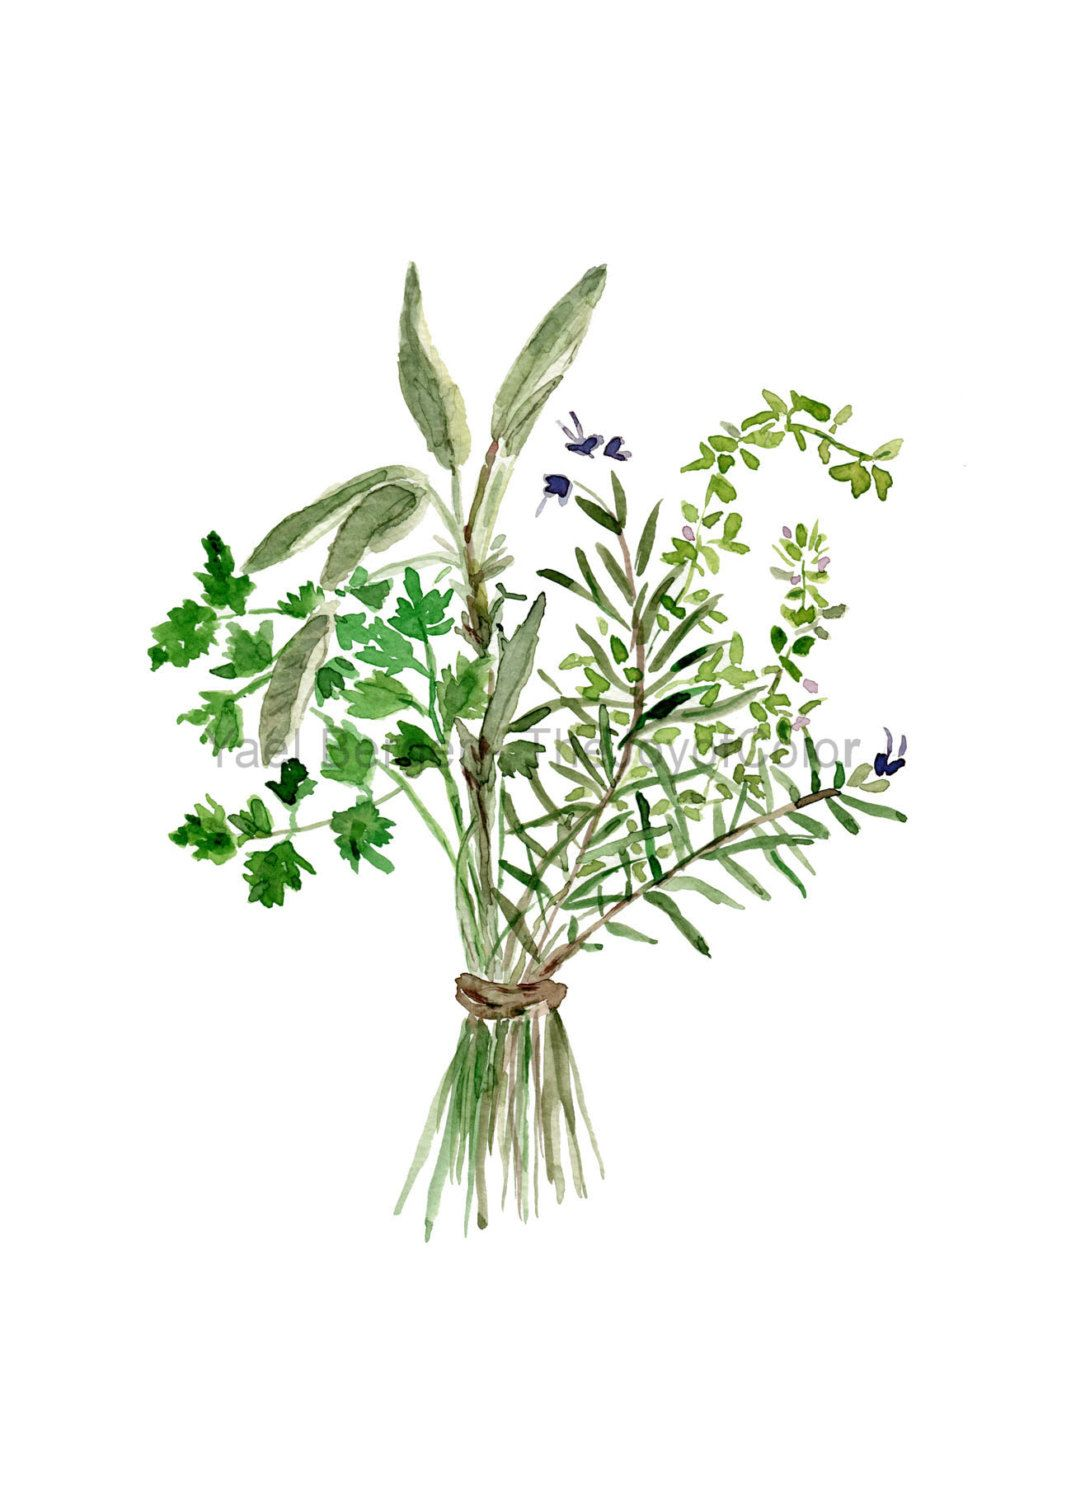 Herbs Bouquet Print Kitchen Art Botanical By Thejoyofcolor